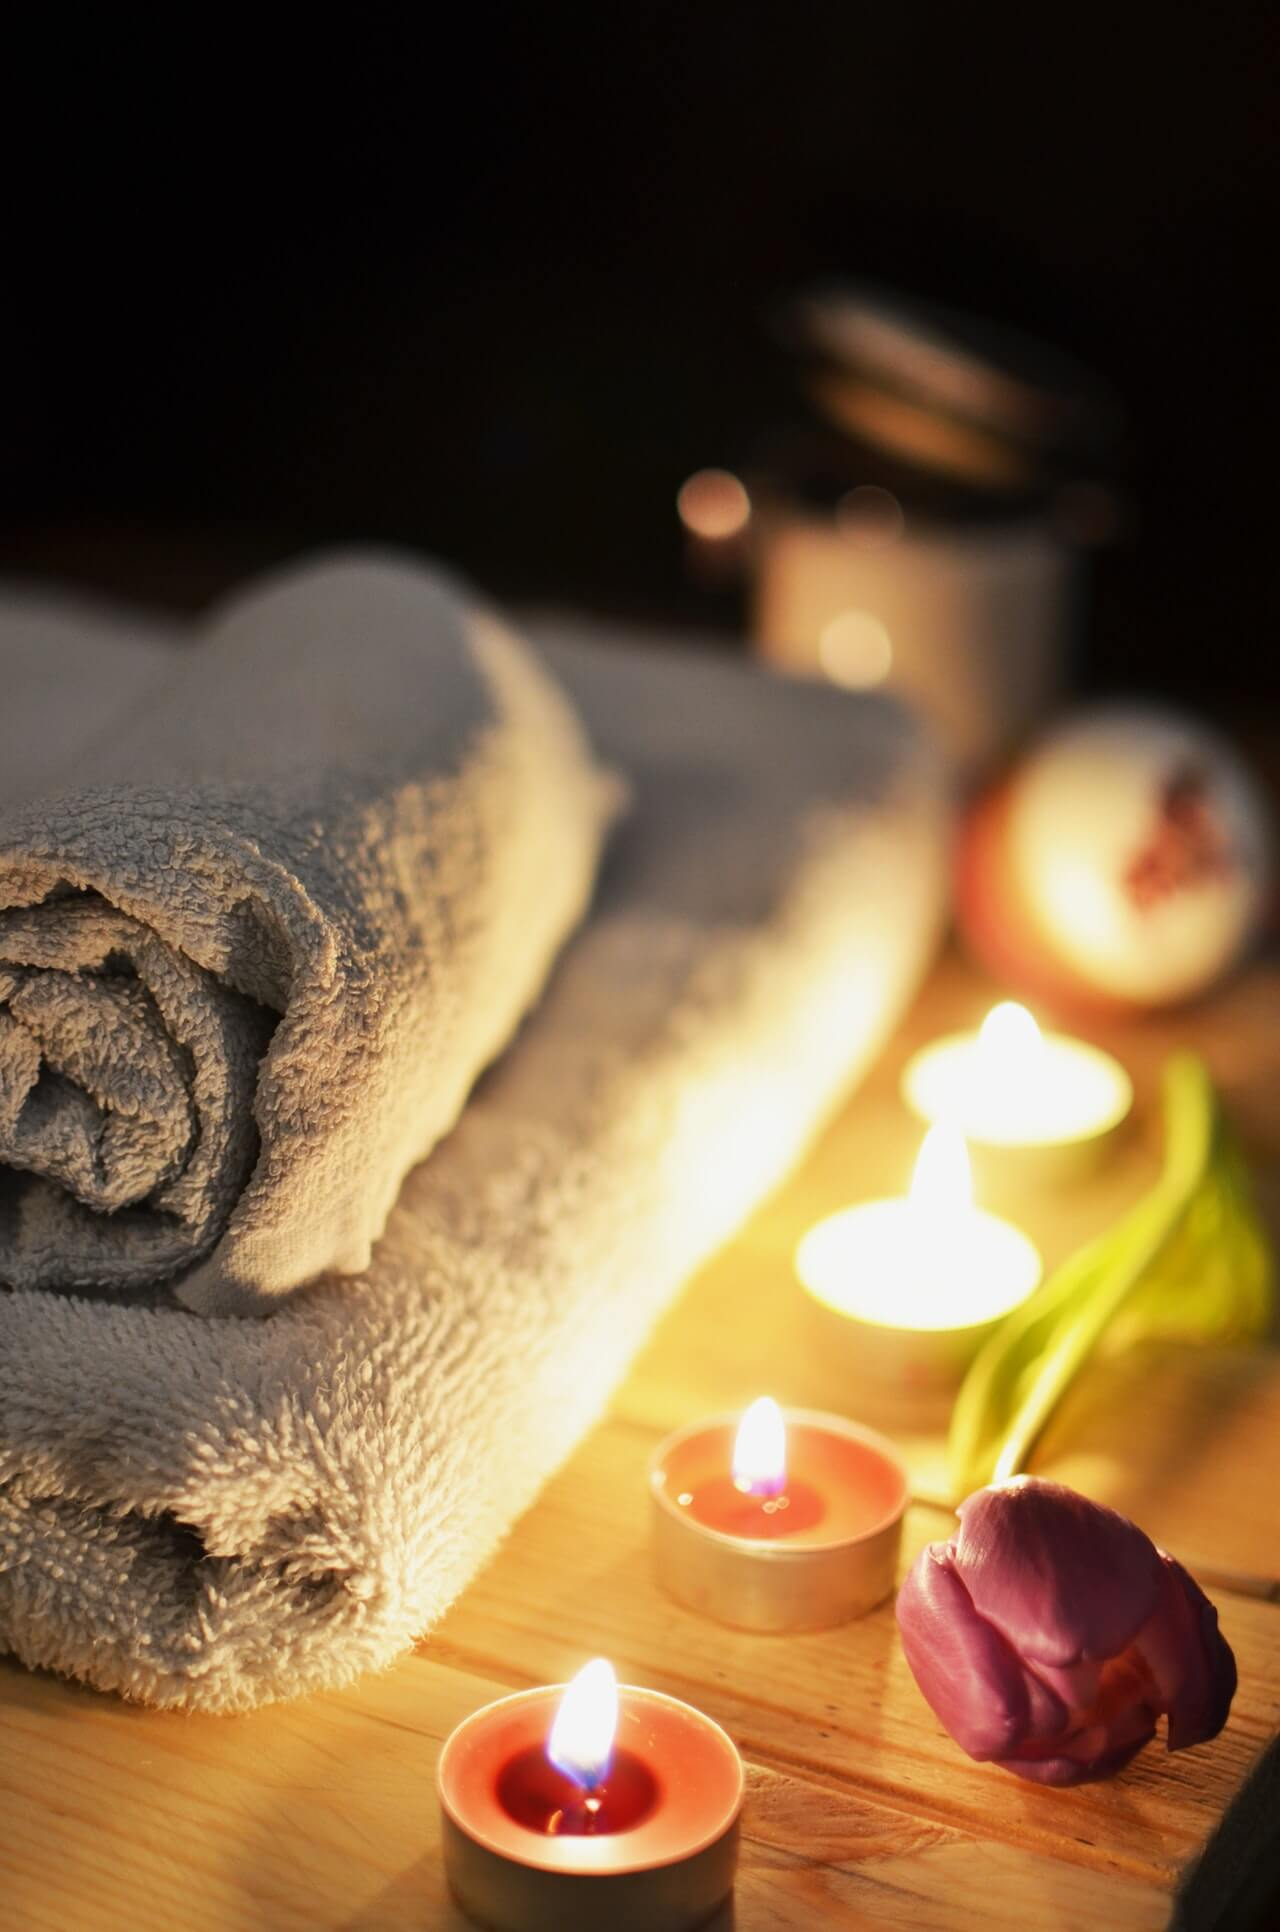 Introduction to Integrative Therapies and Healing Practices